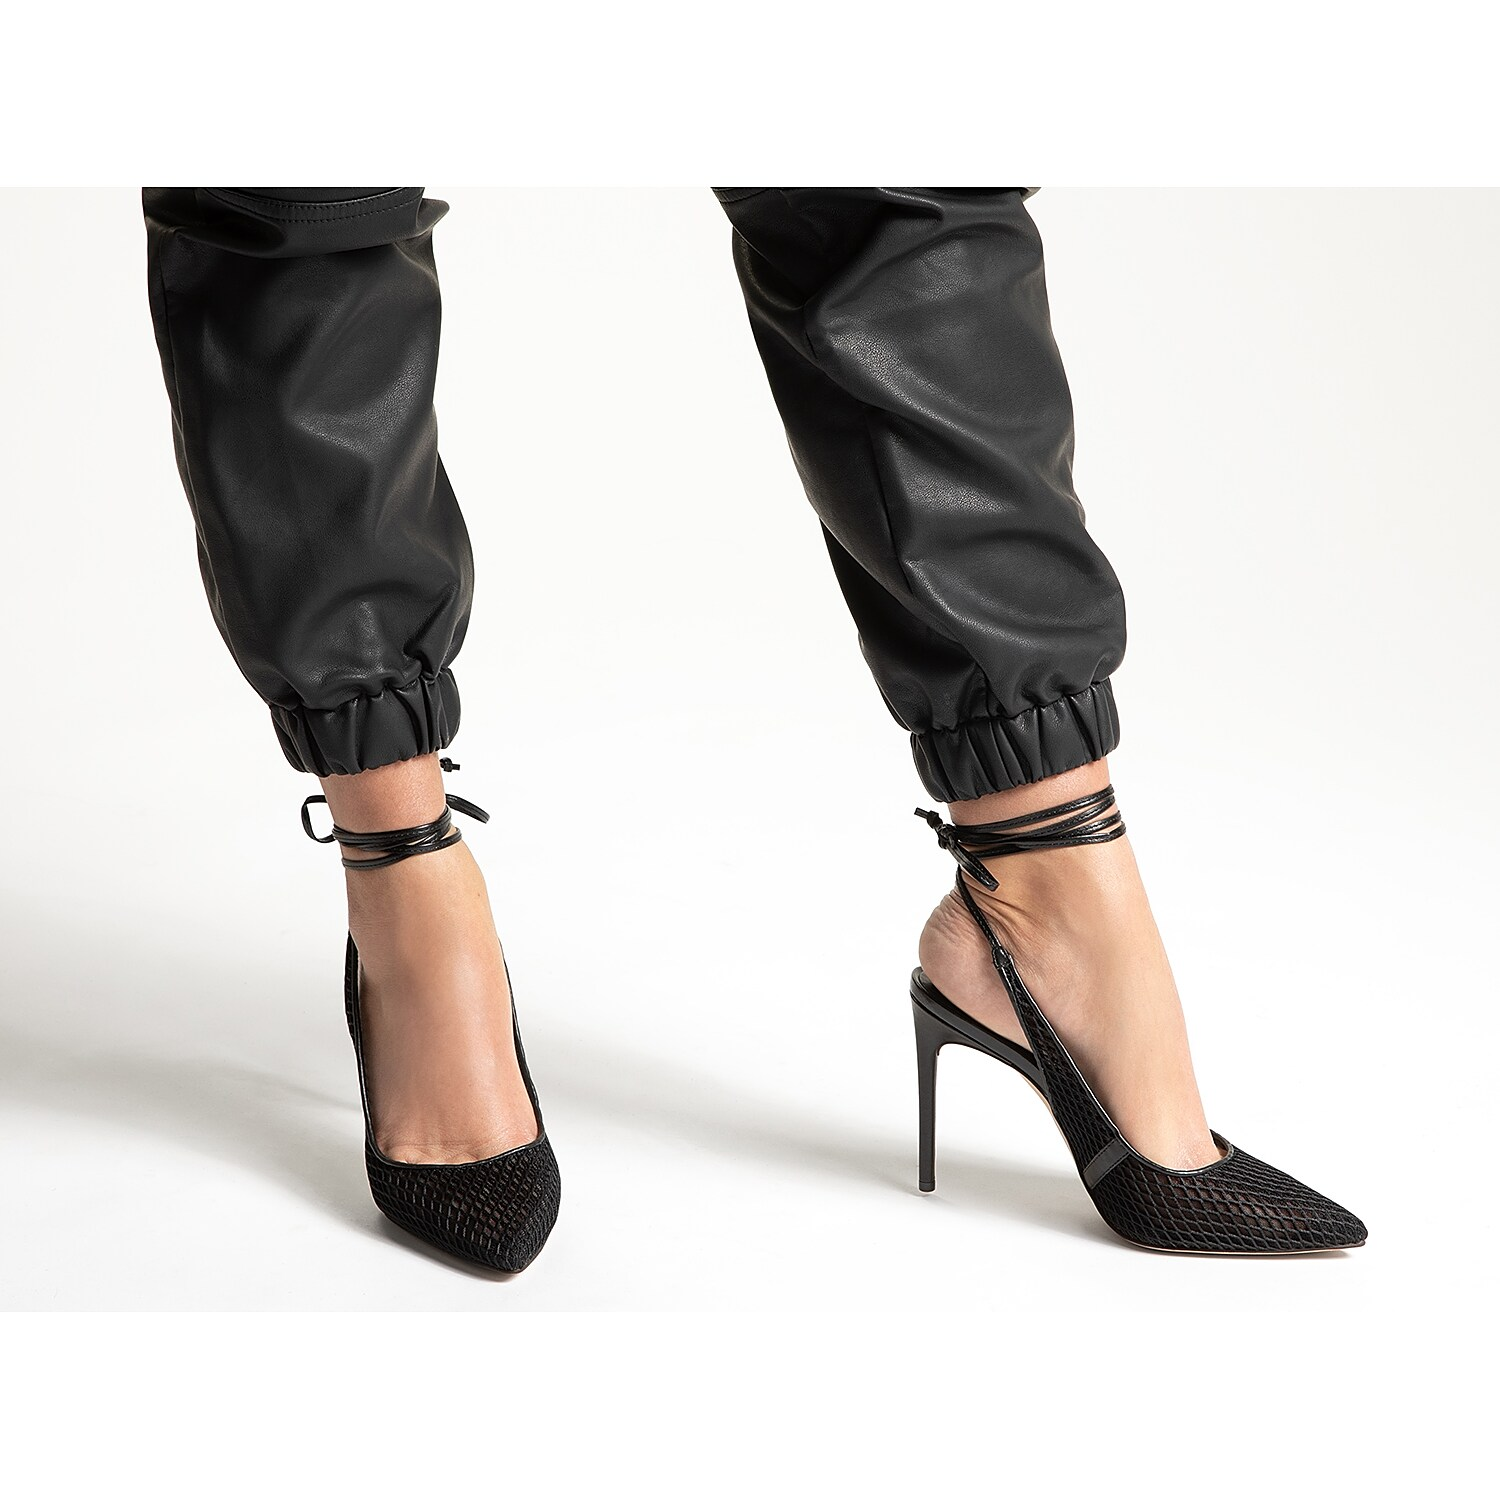 A spiked power heel and skinny ankle straps bring iconic sizzle to the Florella ultra-high pumps from JLO Jennifer Lopez. Backless styling reveals plenty of skin while providing just enough coverage at the pointed toe.